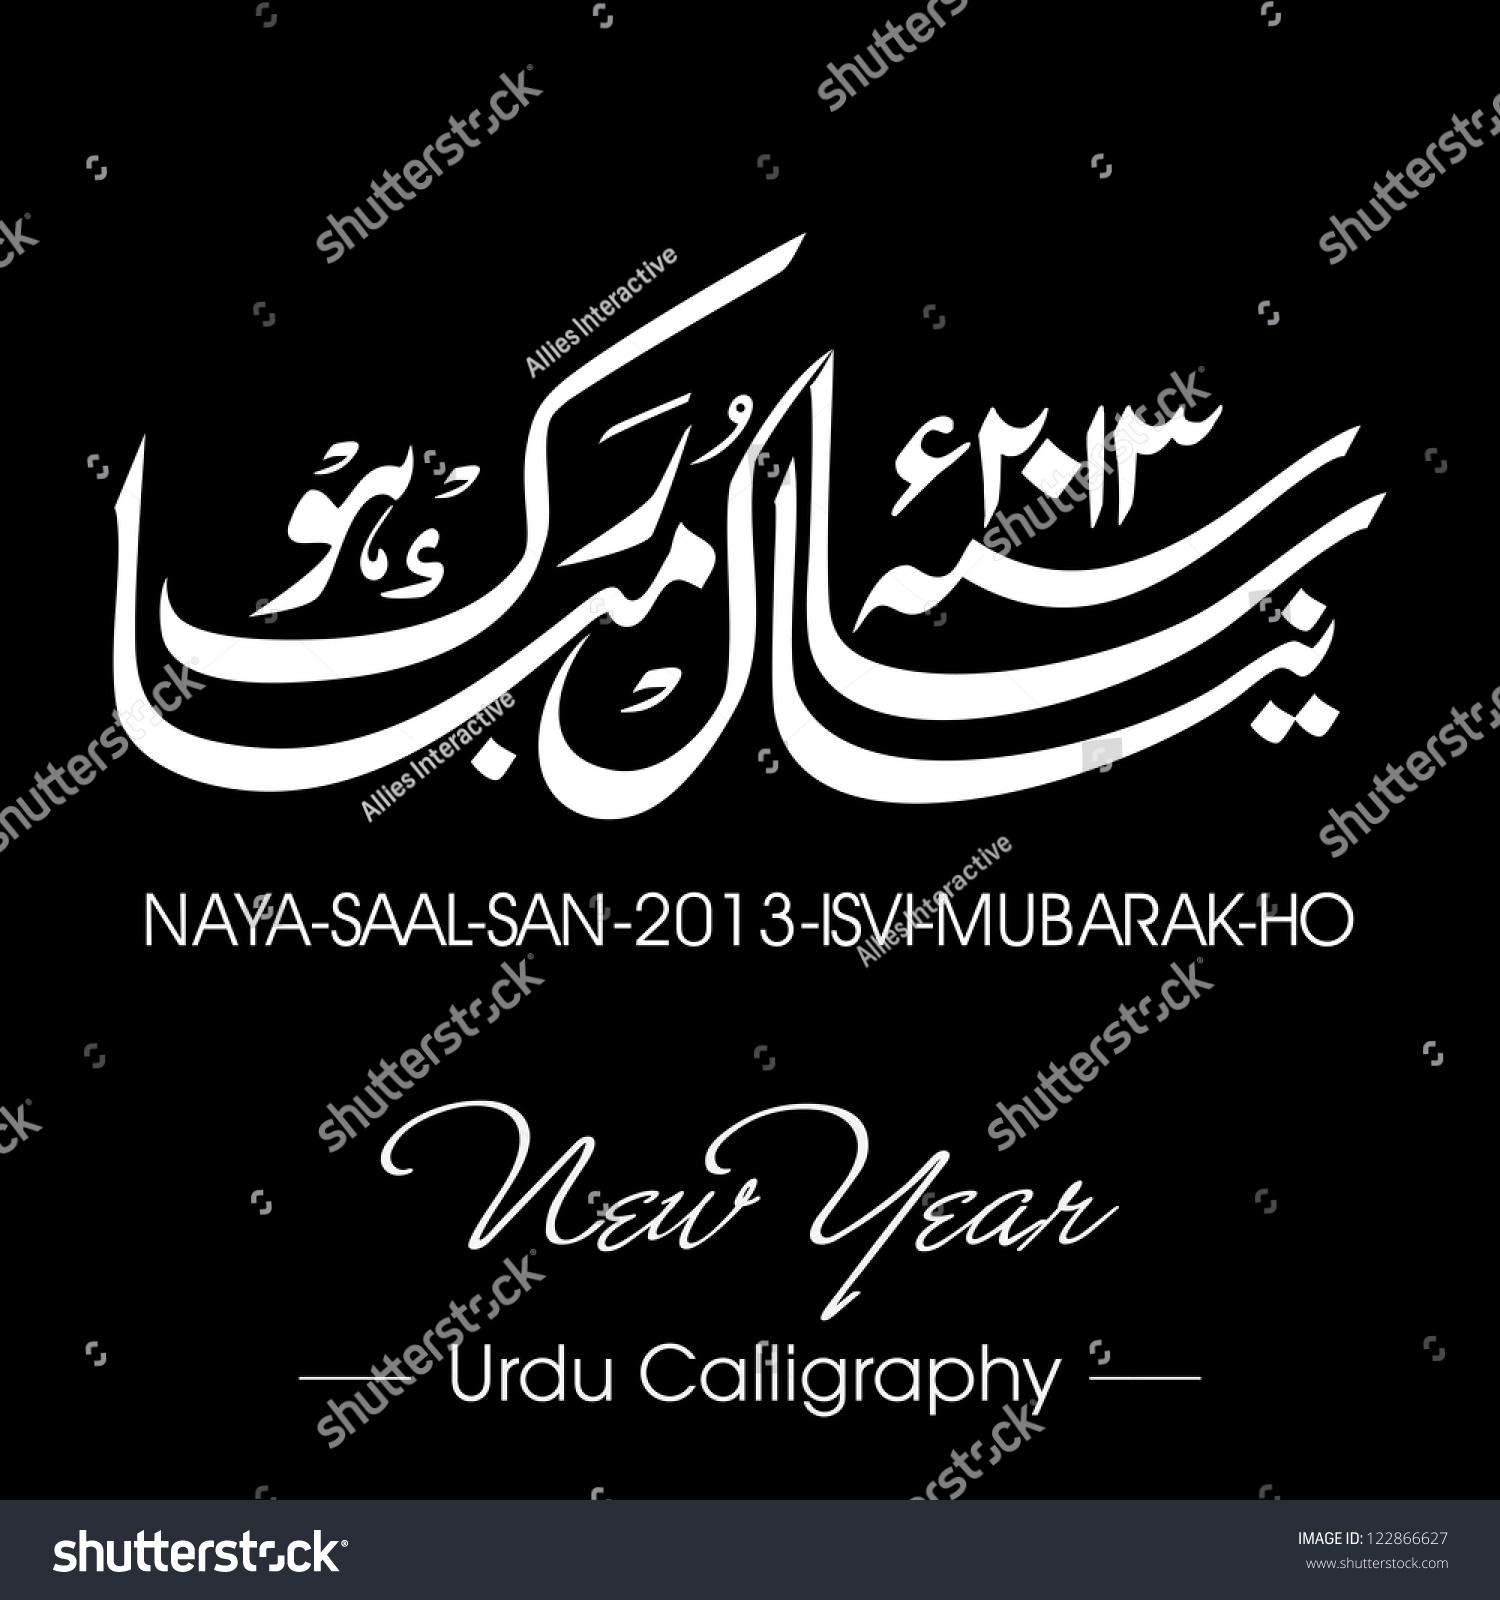 urdu calligraphy of naya saal mubarak ho happy new year eps 10 ez canvas